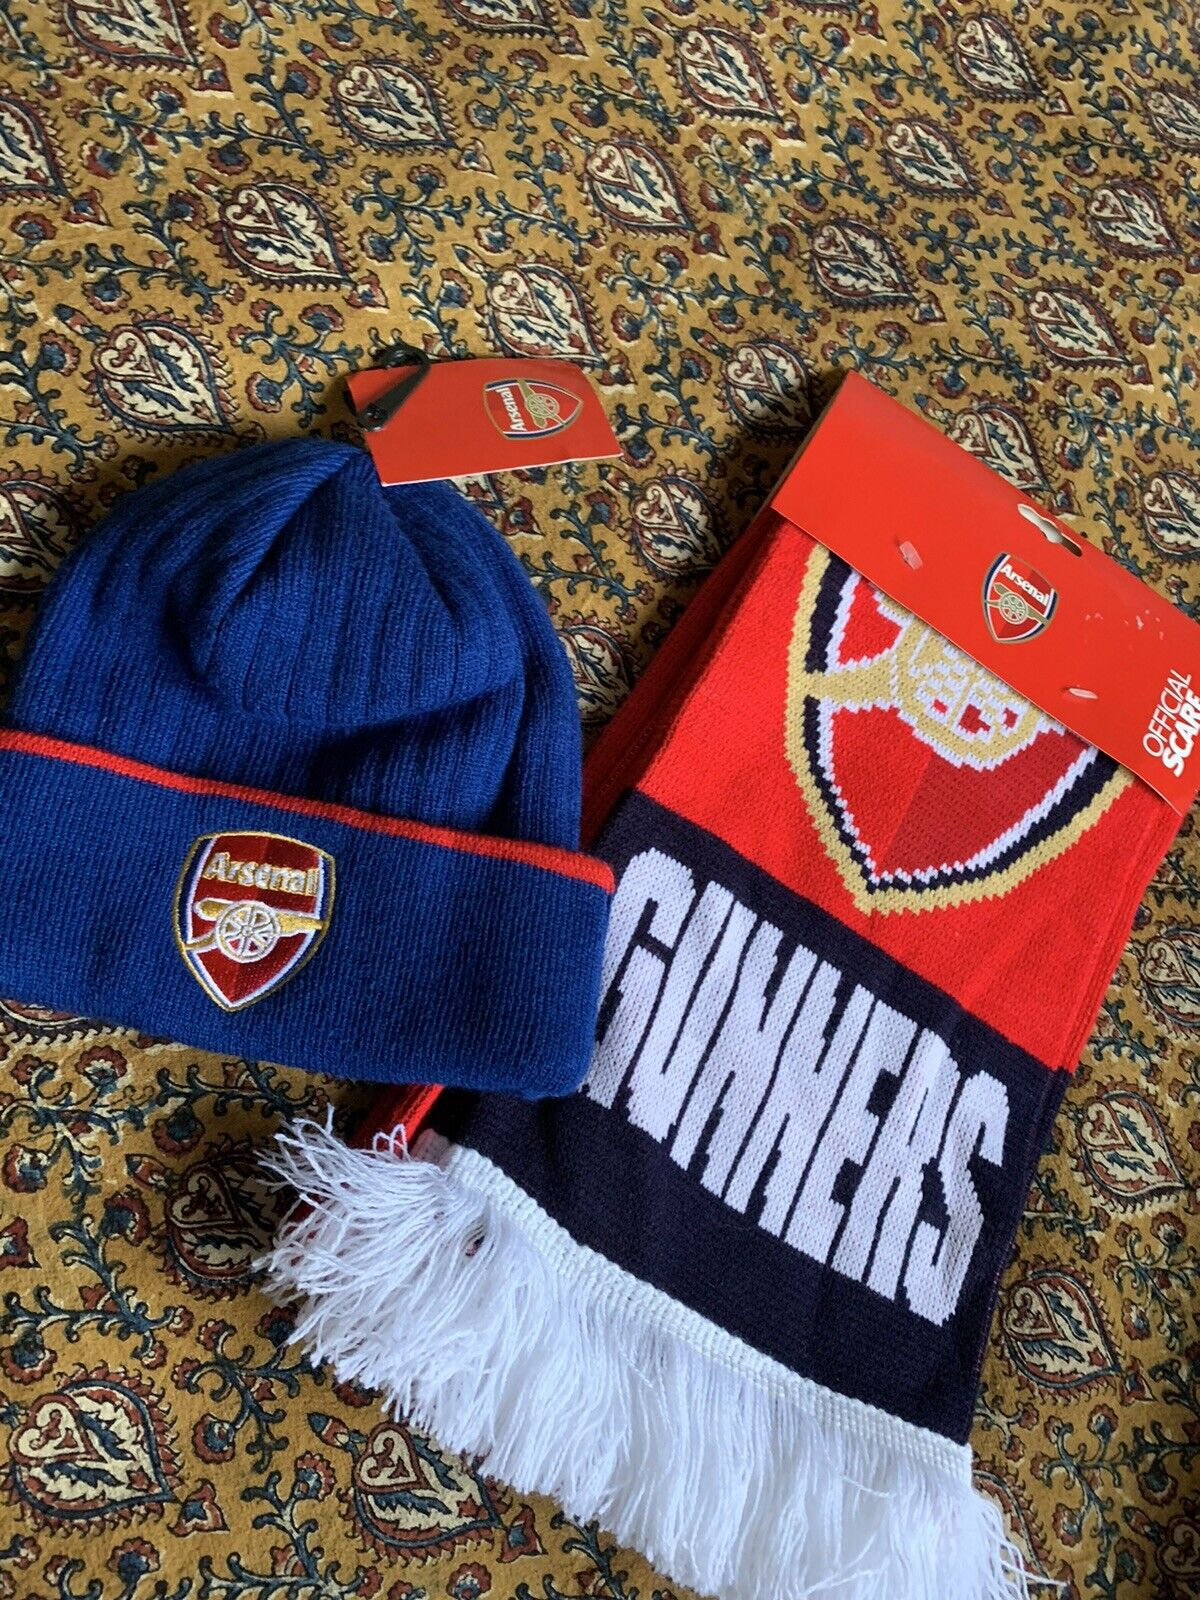 Arsenal beanie hat and scarf set